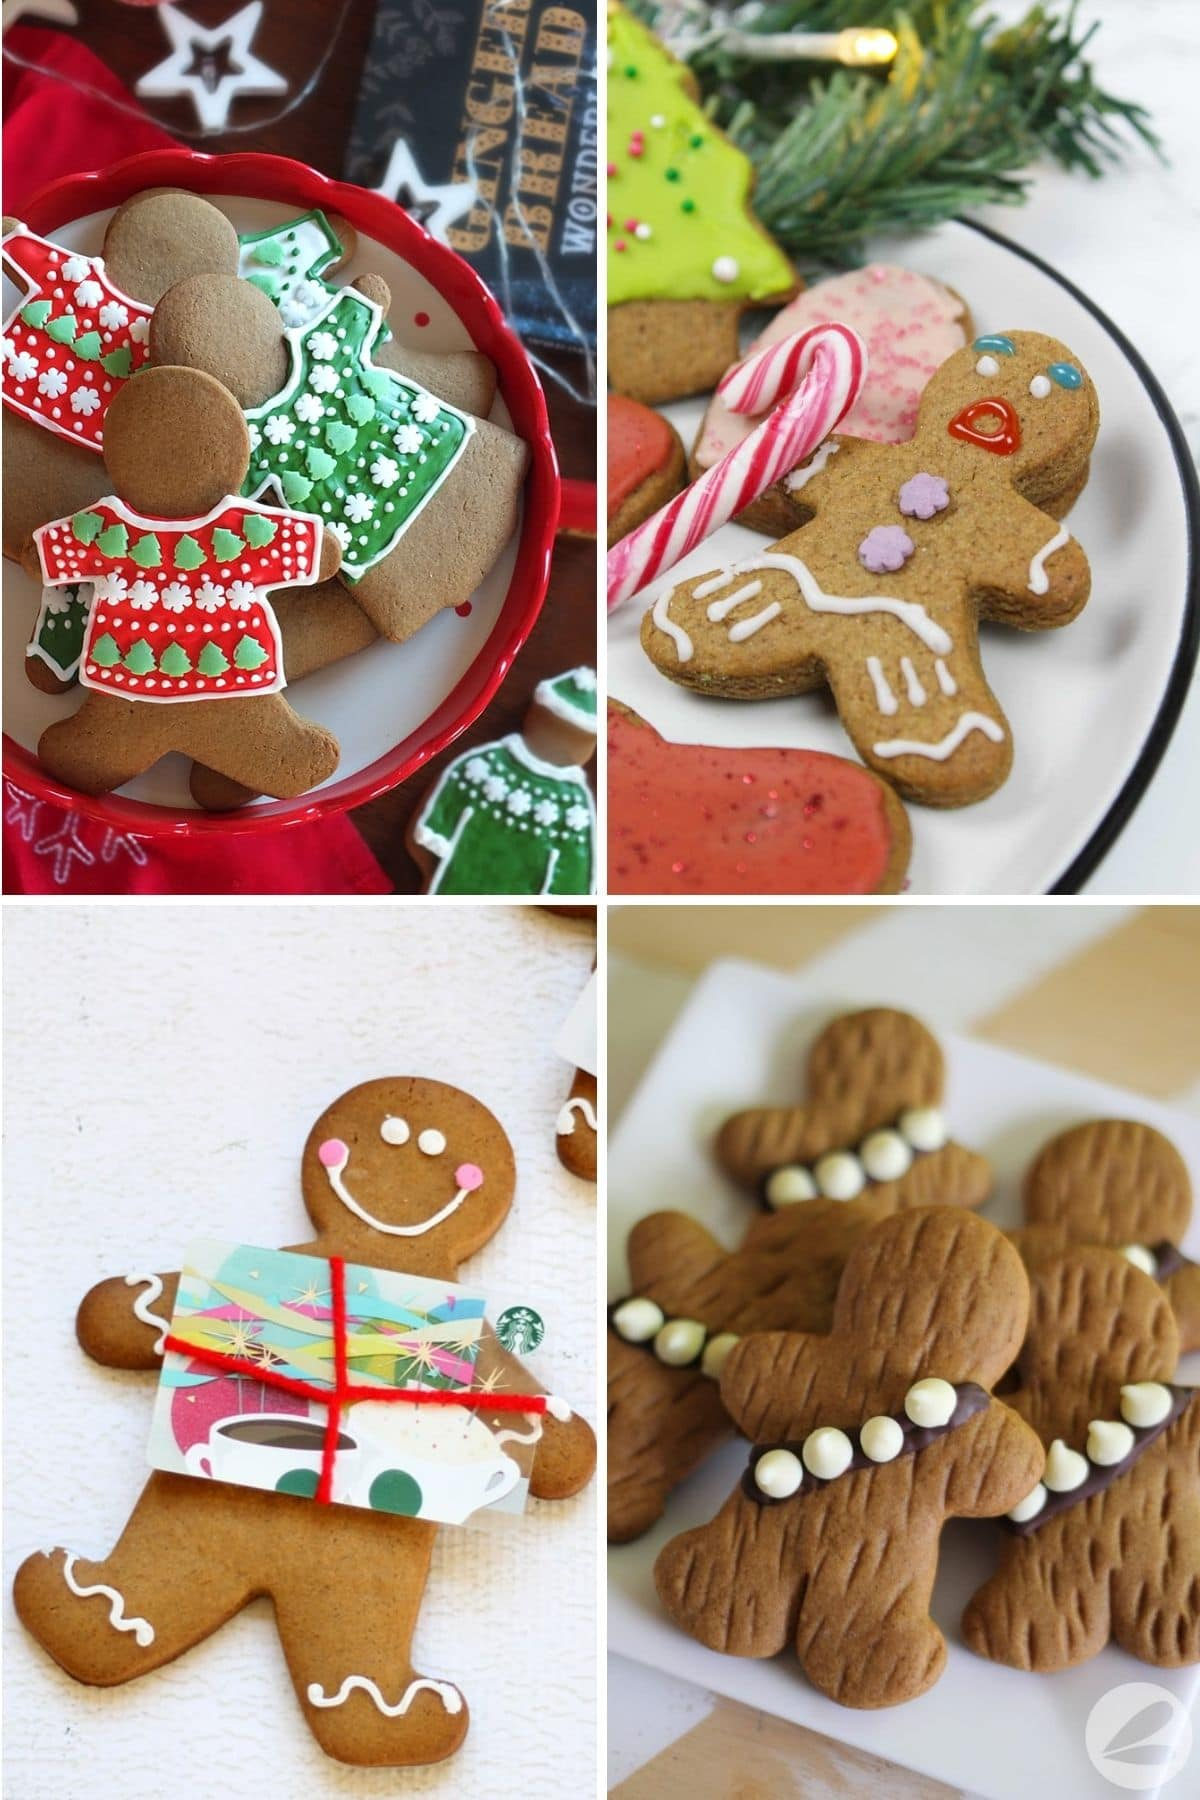 Four gingerbread man decorating ideas - ugly sweater gingerbread people, Gingy from Shrek, Gingerbread man gift card holder, Gingerbread Wookies.